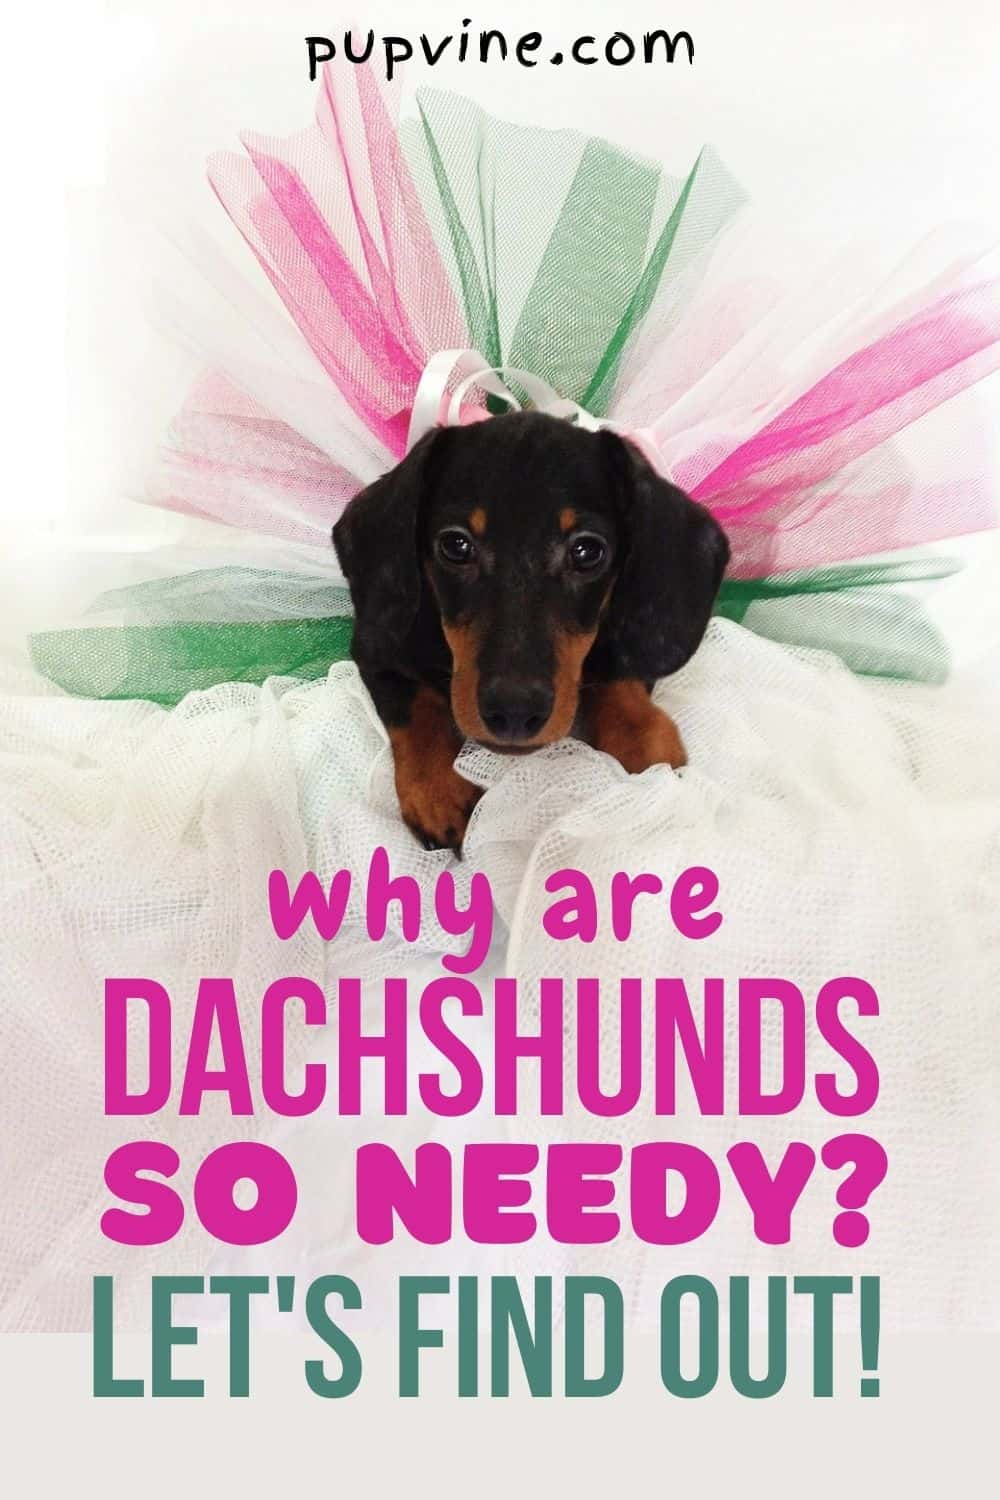 Why Are Dachshunds So Needy? Let's Find Out!